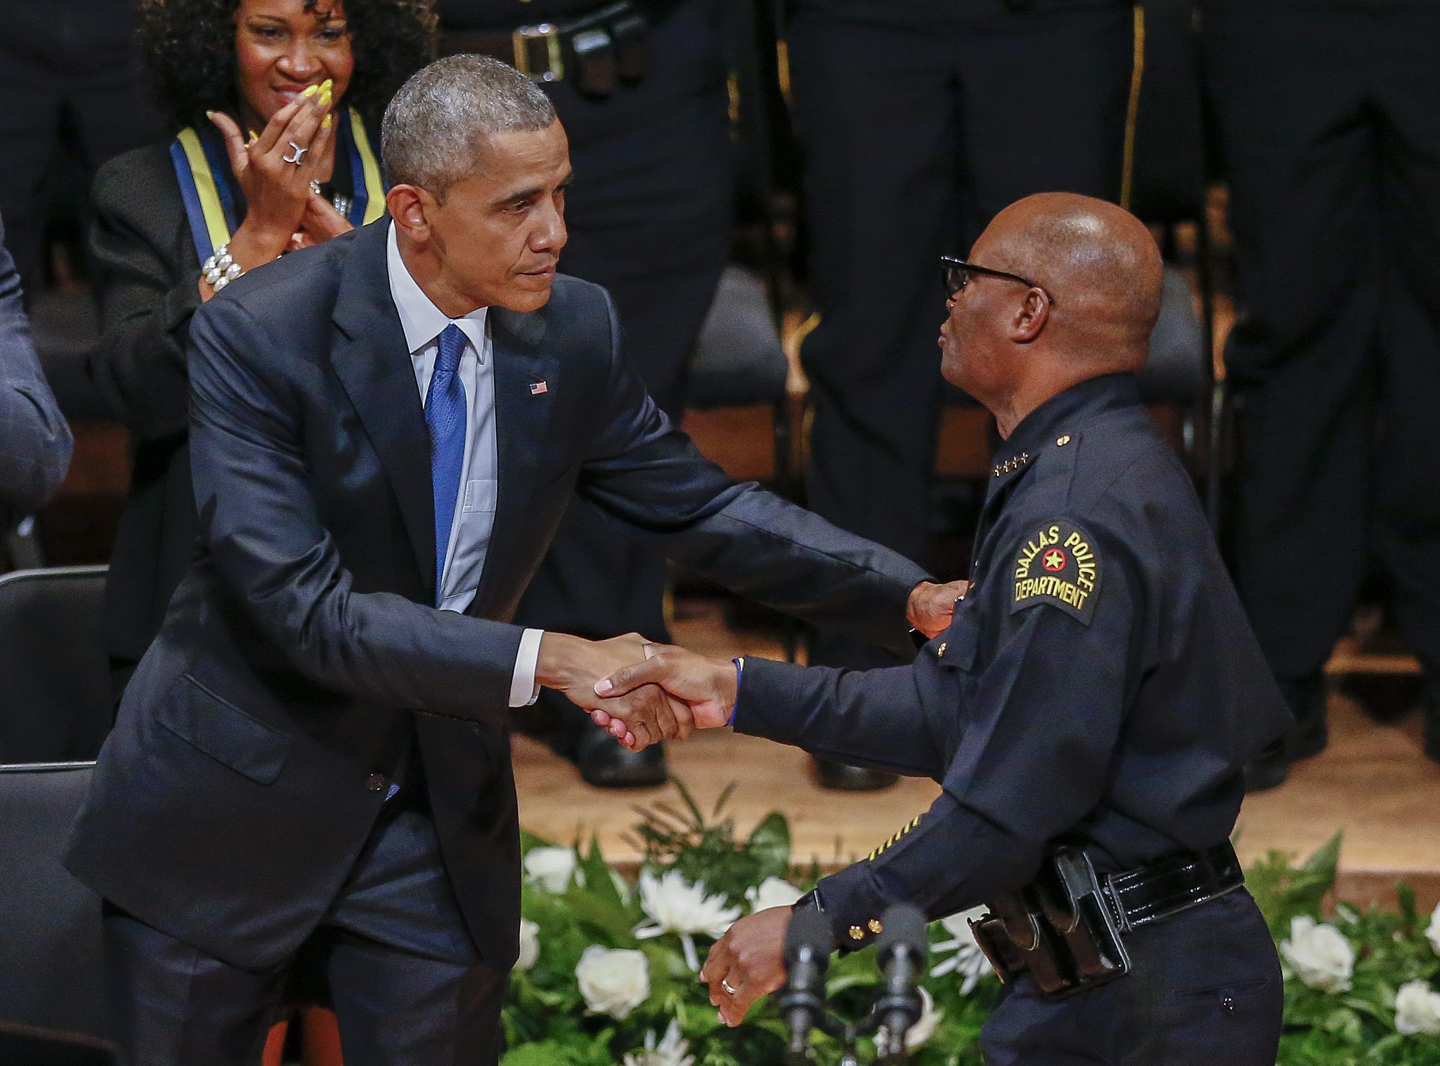 US President Barack Obama (L) is greeted by Dallas Police Department Chief David Brown (R) during the Interfaith Tribute to Dallas Fallen Officers at the Morton H. Meyerson Symphony Center in Dallas, Texas, USA, 12 July 2016. Five Dallas police officers died after an ambush assault by a gunman during a protest rally in Dallas on 07 July.